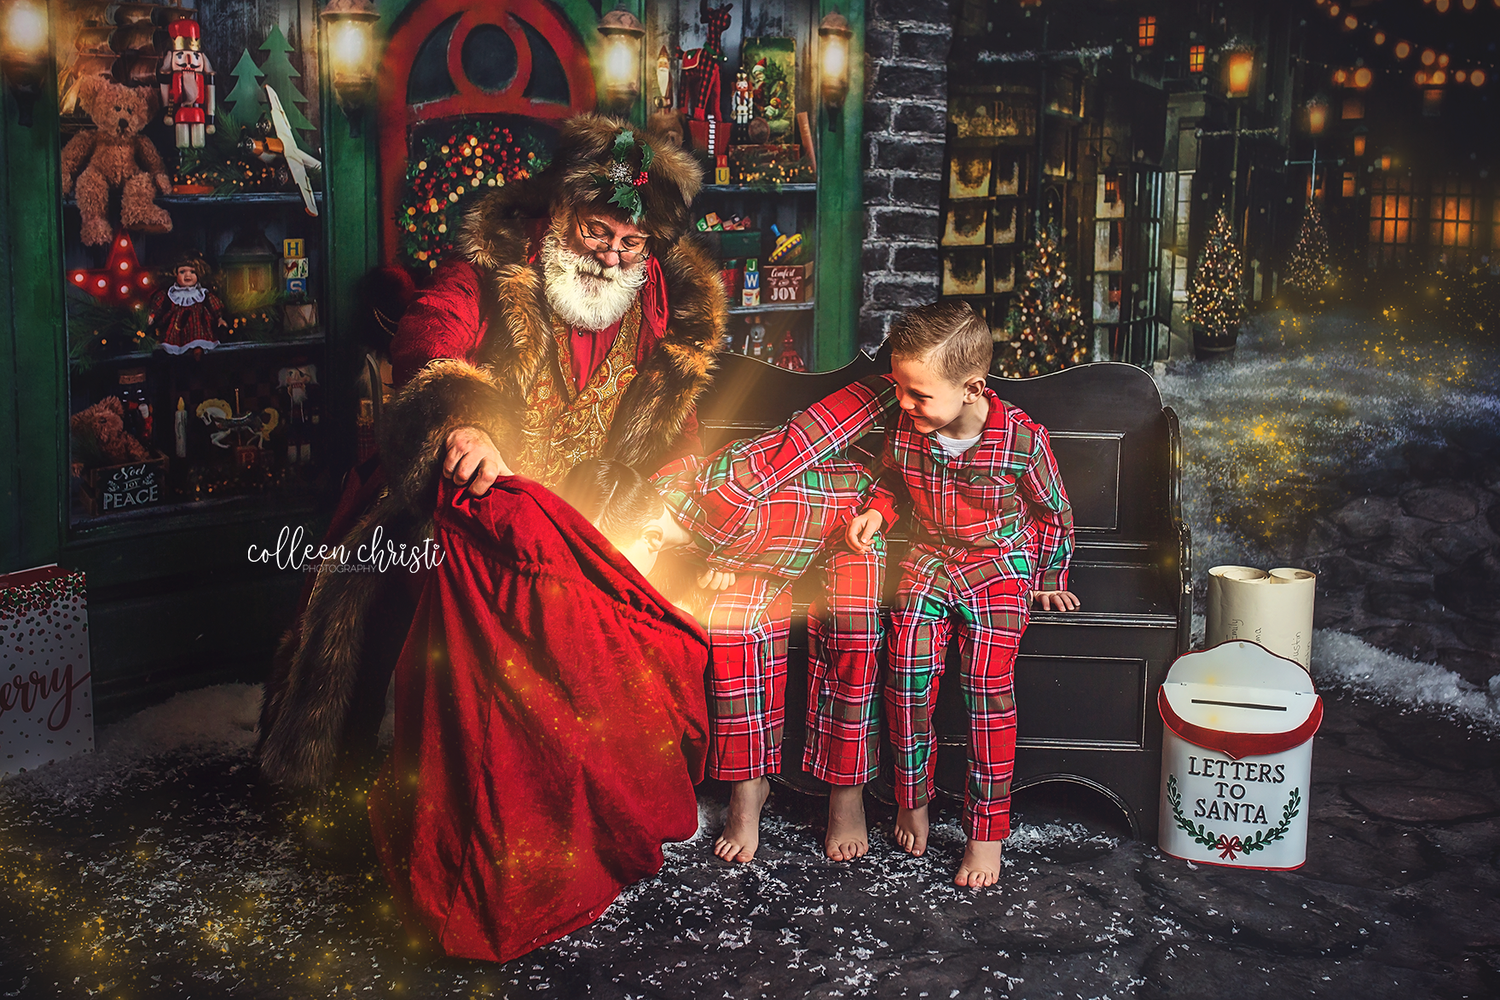 Image of The Santa Experience Photographers Workshop